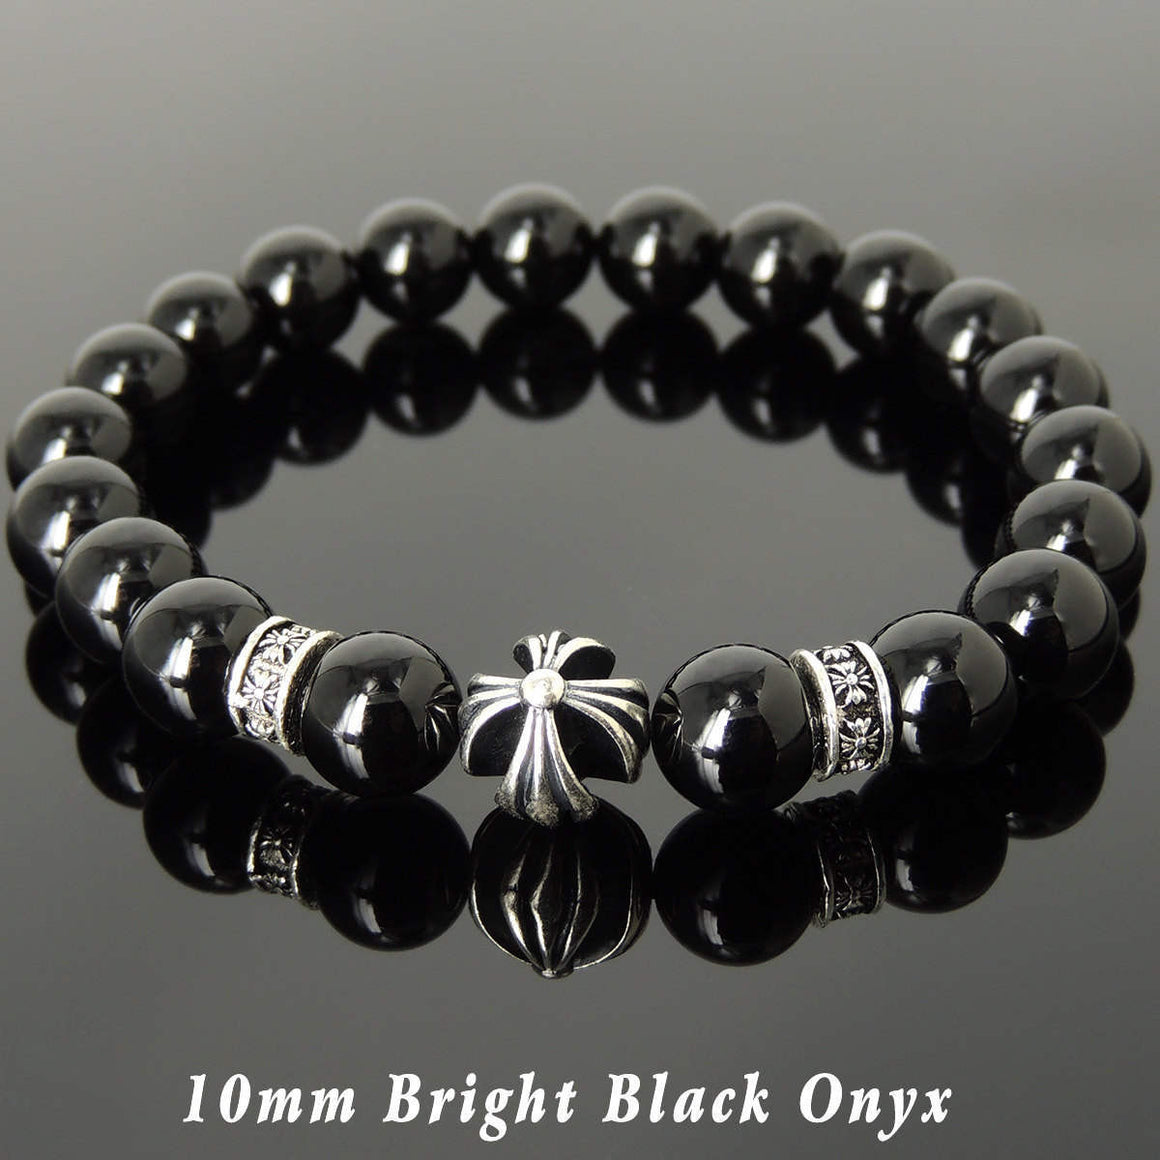 10mm Bright Black Onyx Healing Gemstone Bracelet with S925 Sterling Silver Cross & Spacer Beads - Handmade by Gem & Silver BR1089